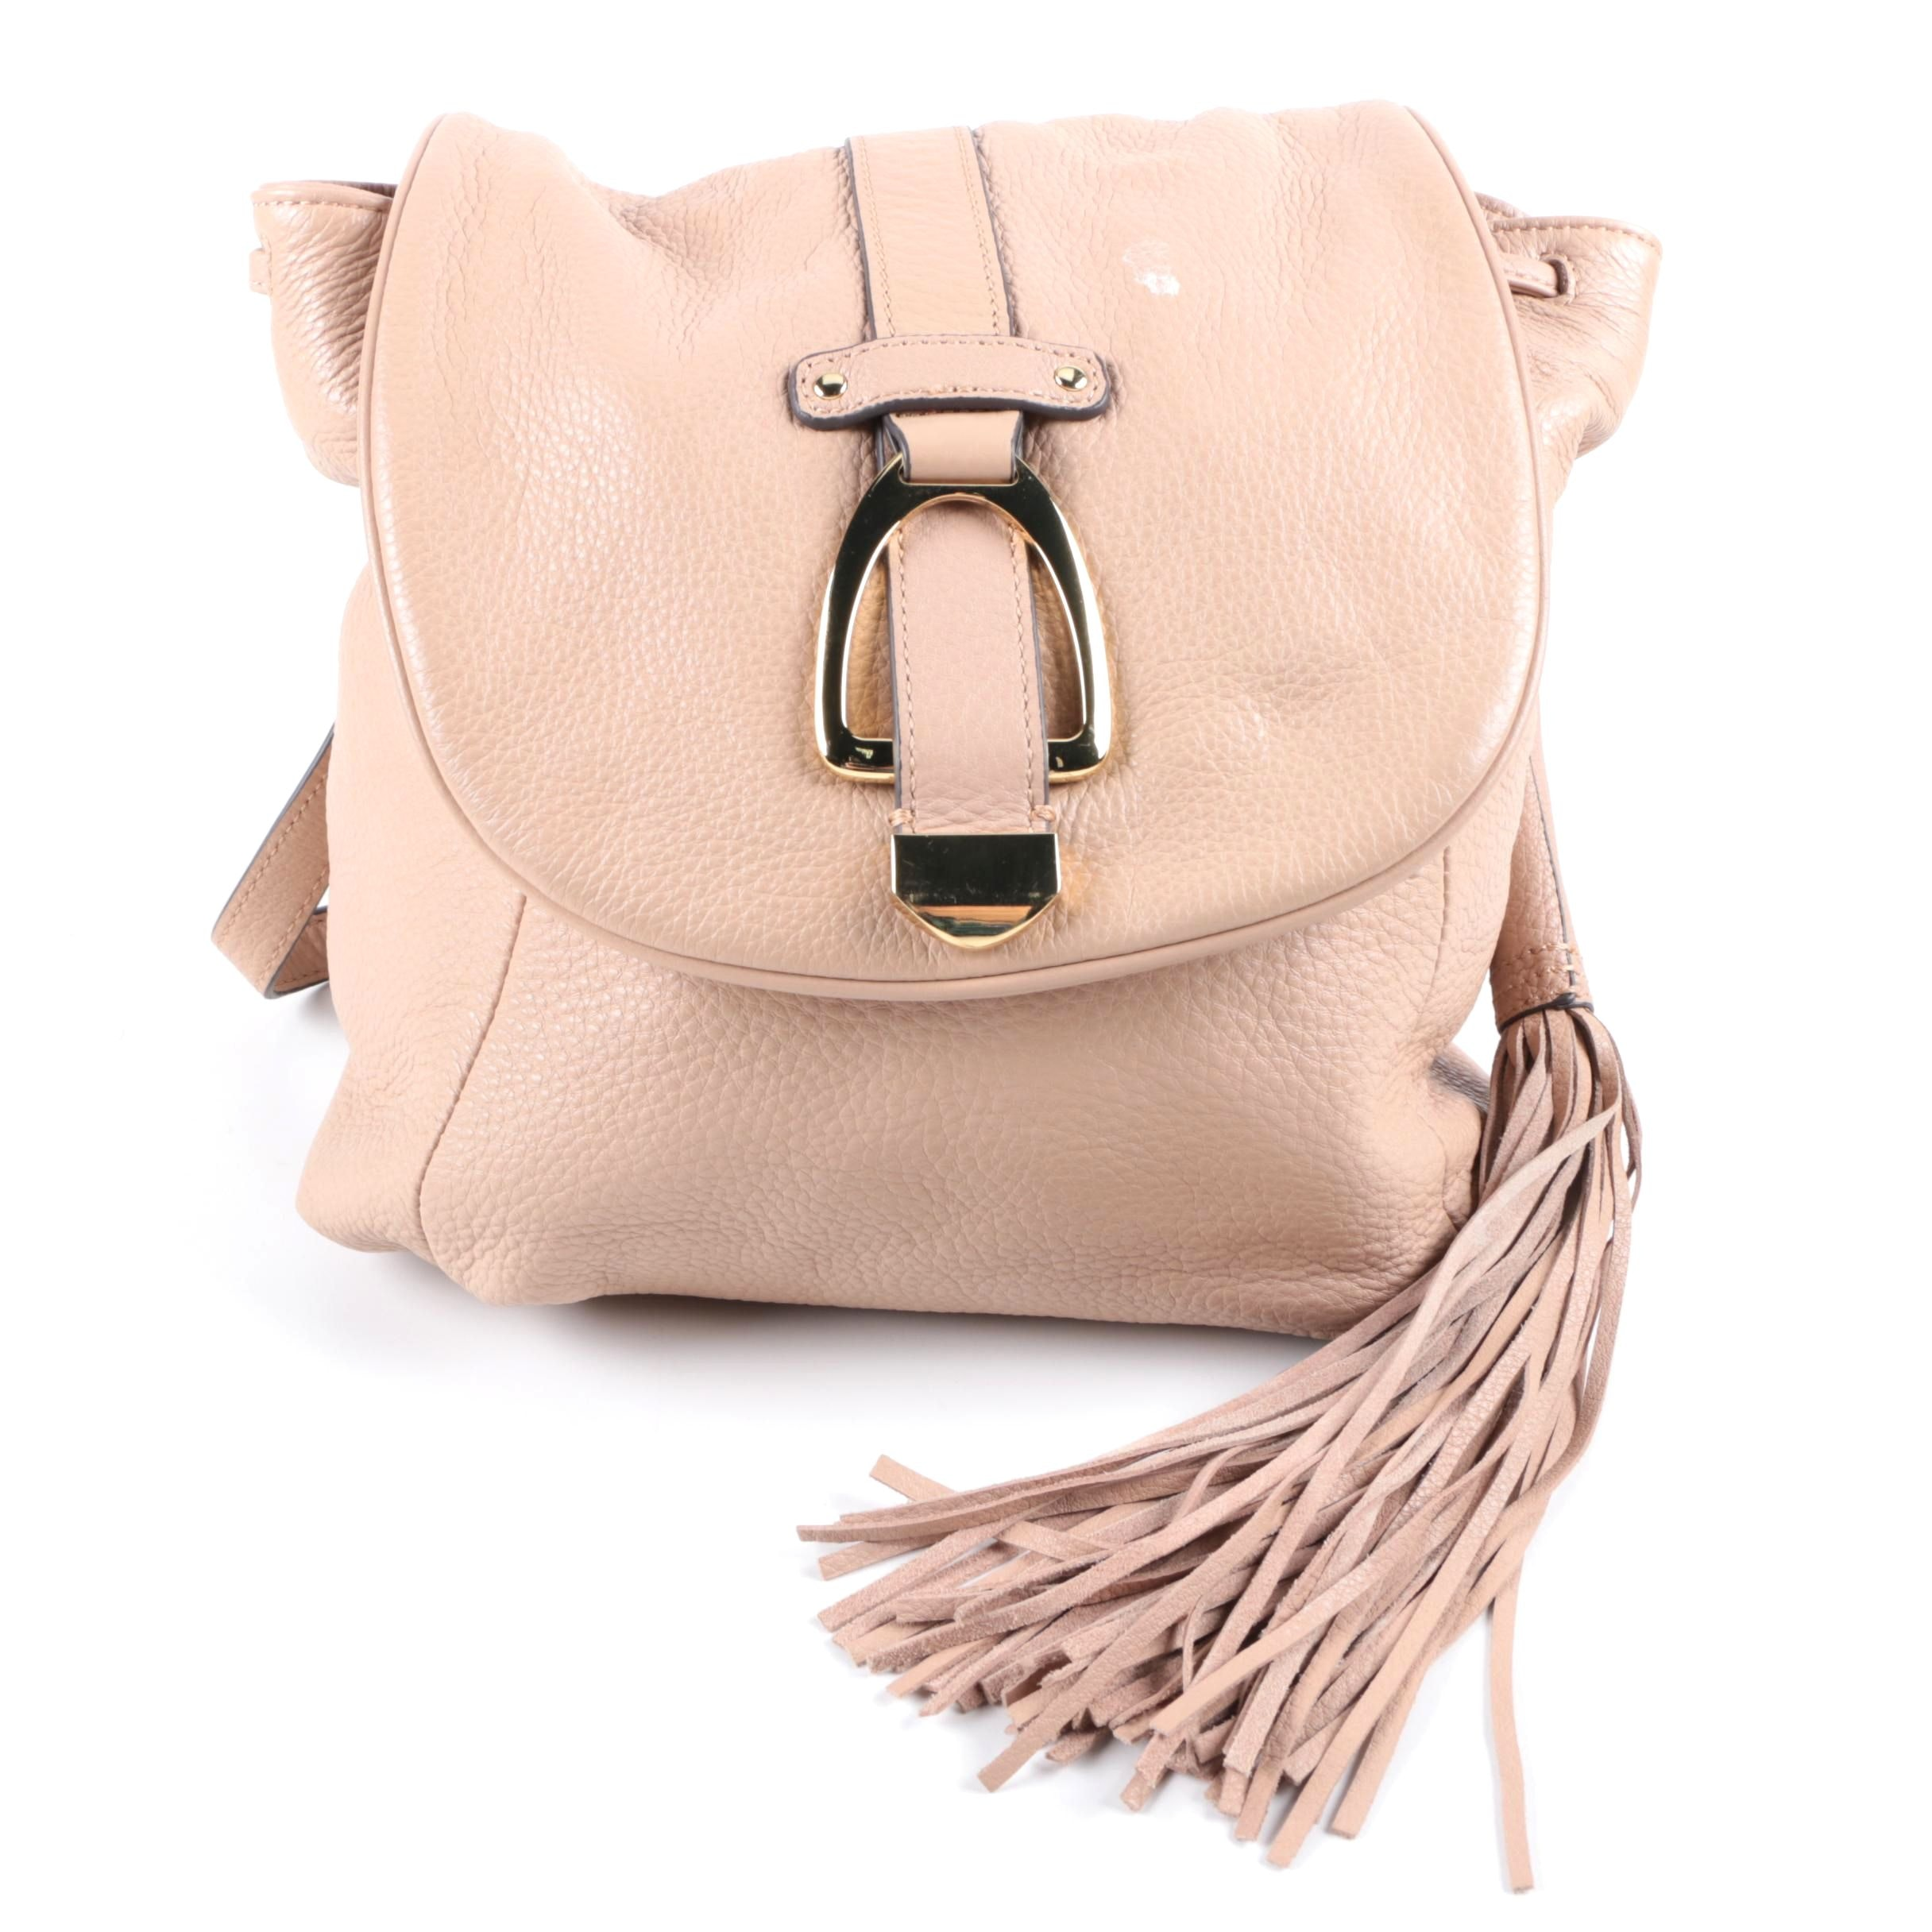 G.I.L.I Got It Love It Pebbled Leather Convertible Backpack Bag